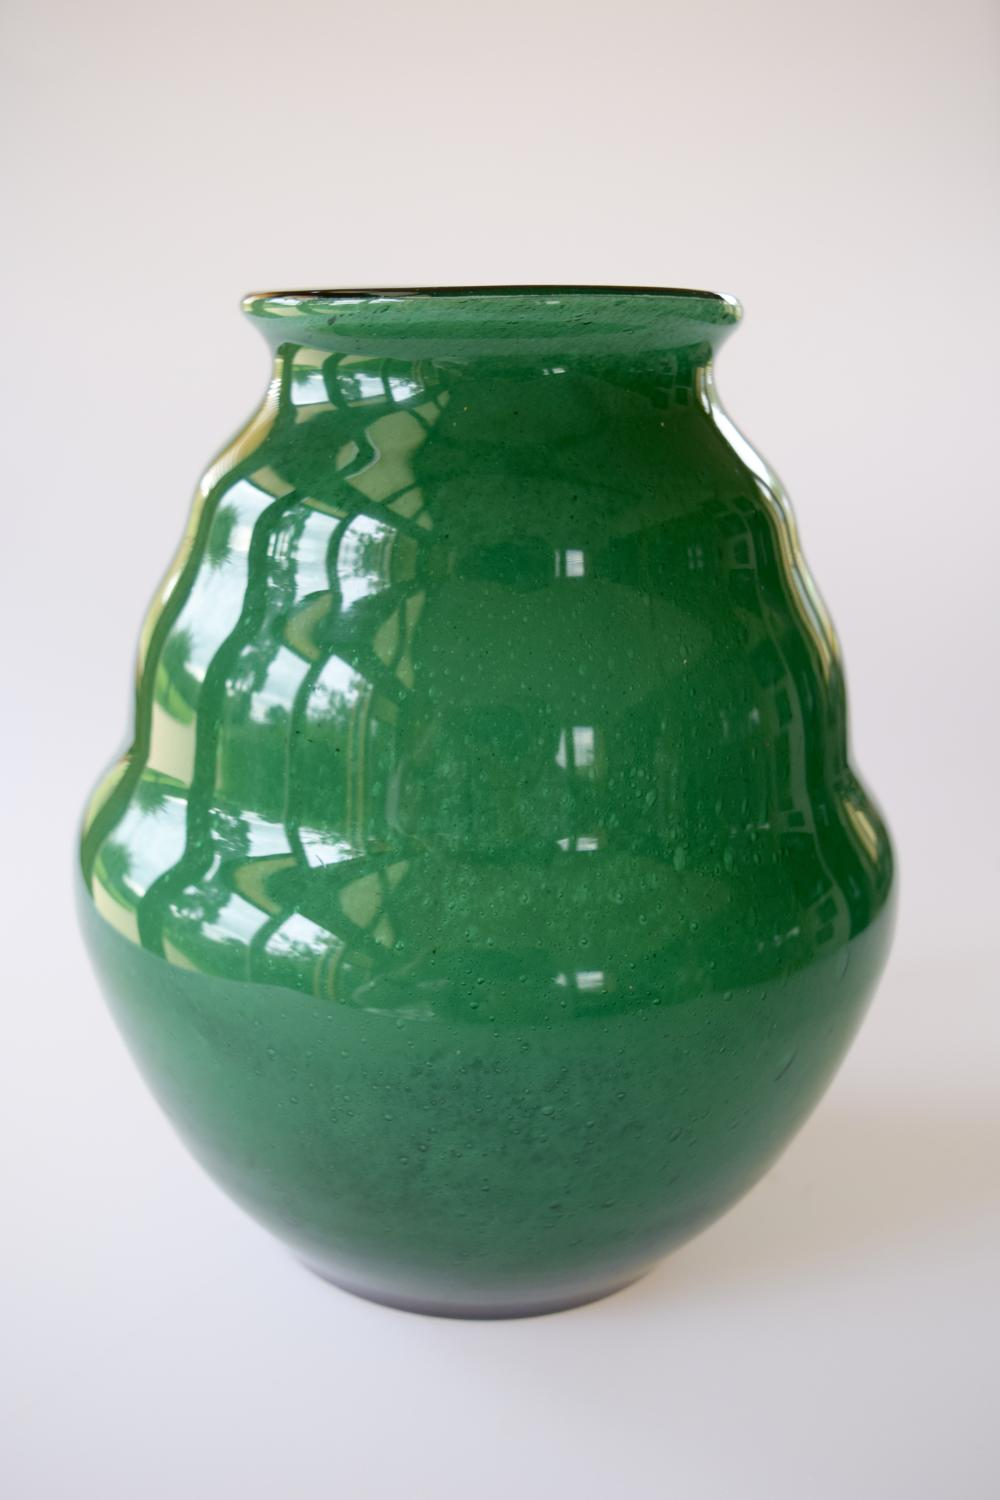 Bee hive shaped green cloudy vase.